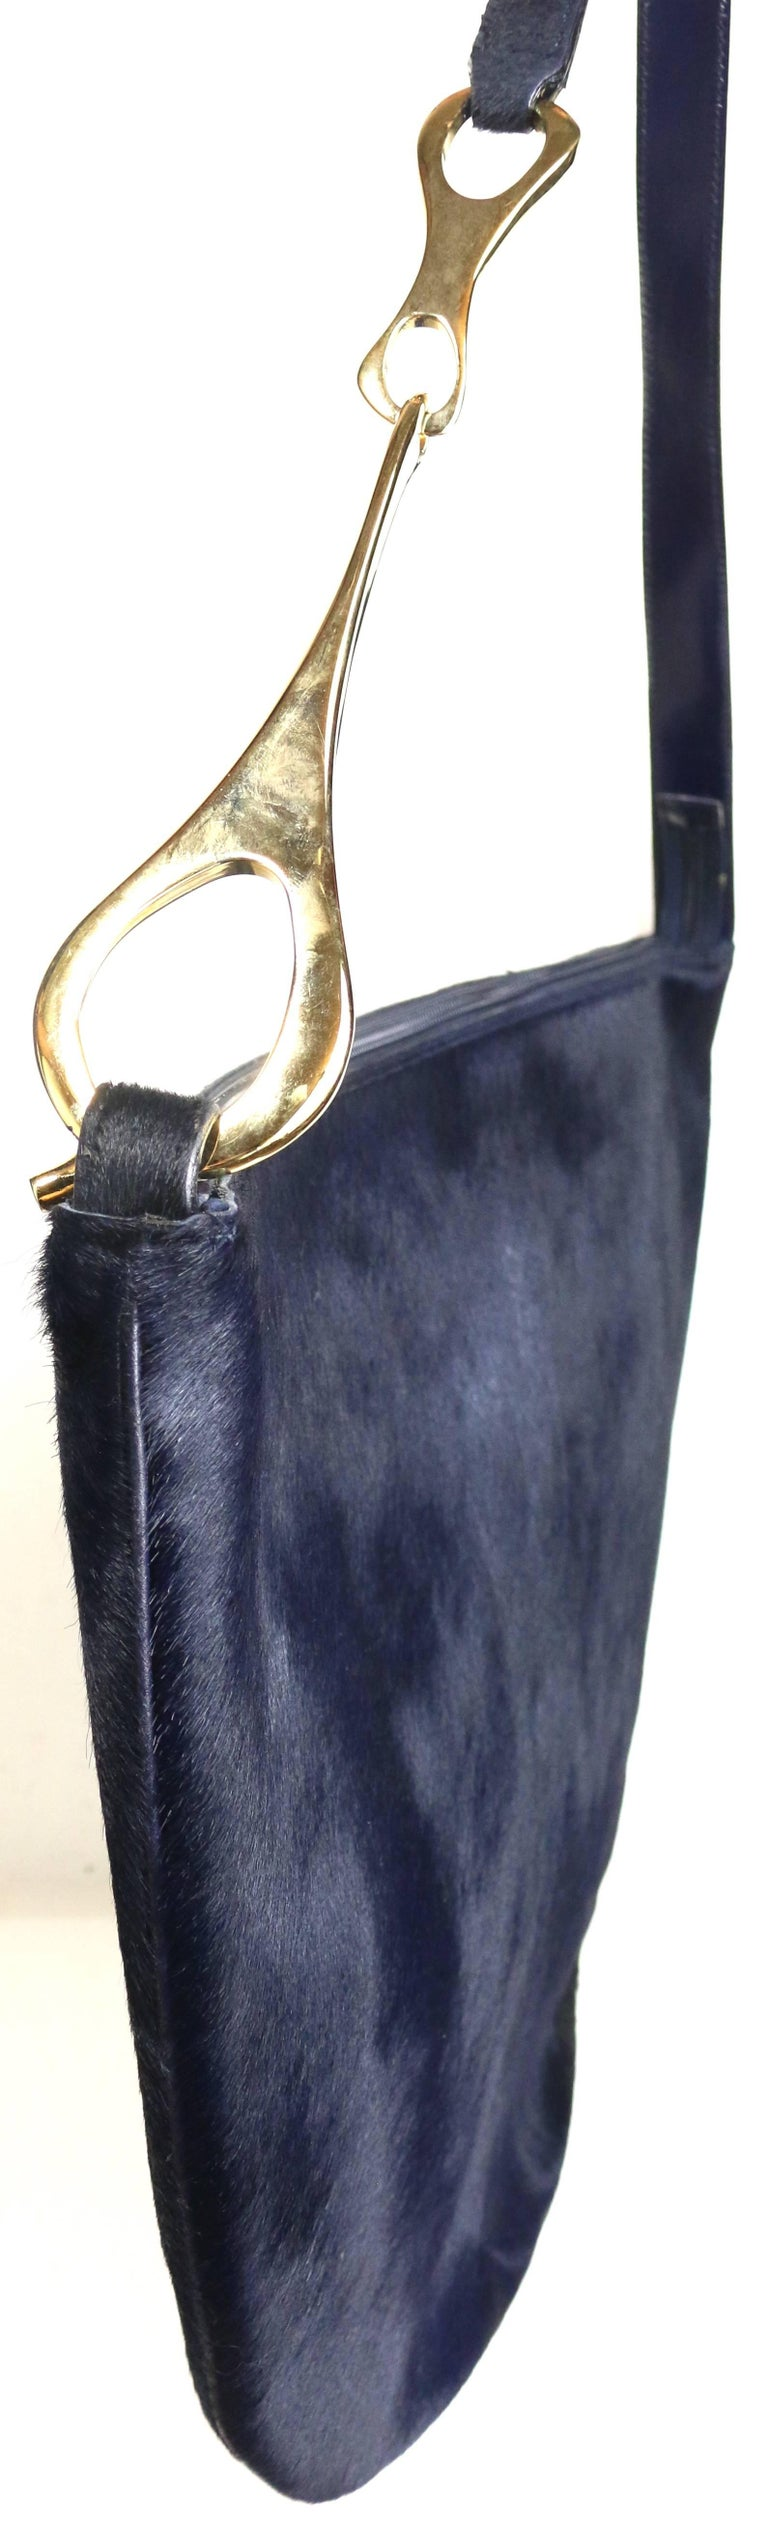 - Gucci by Tom Ford navy pony hair jumbo shoulder bag from Fall 1996 collection.   - Half circle shape.   - The signature Fall 1996 collection gold toned metal buckle shoulder strap.  - Gold toned metal